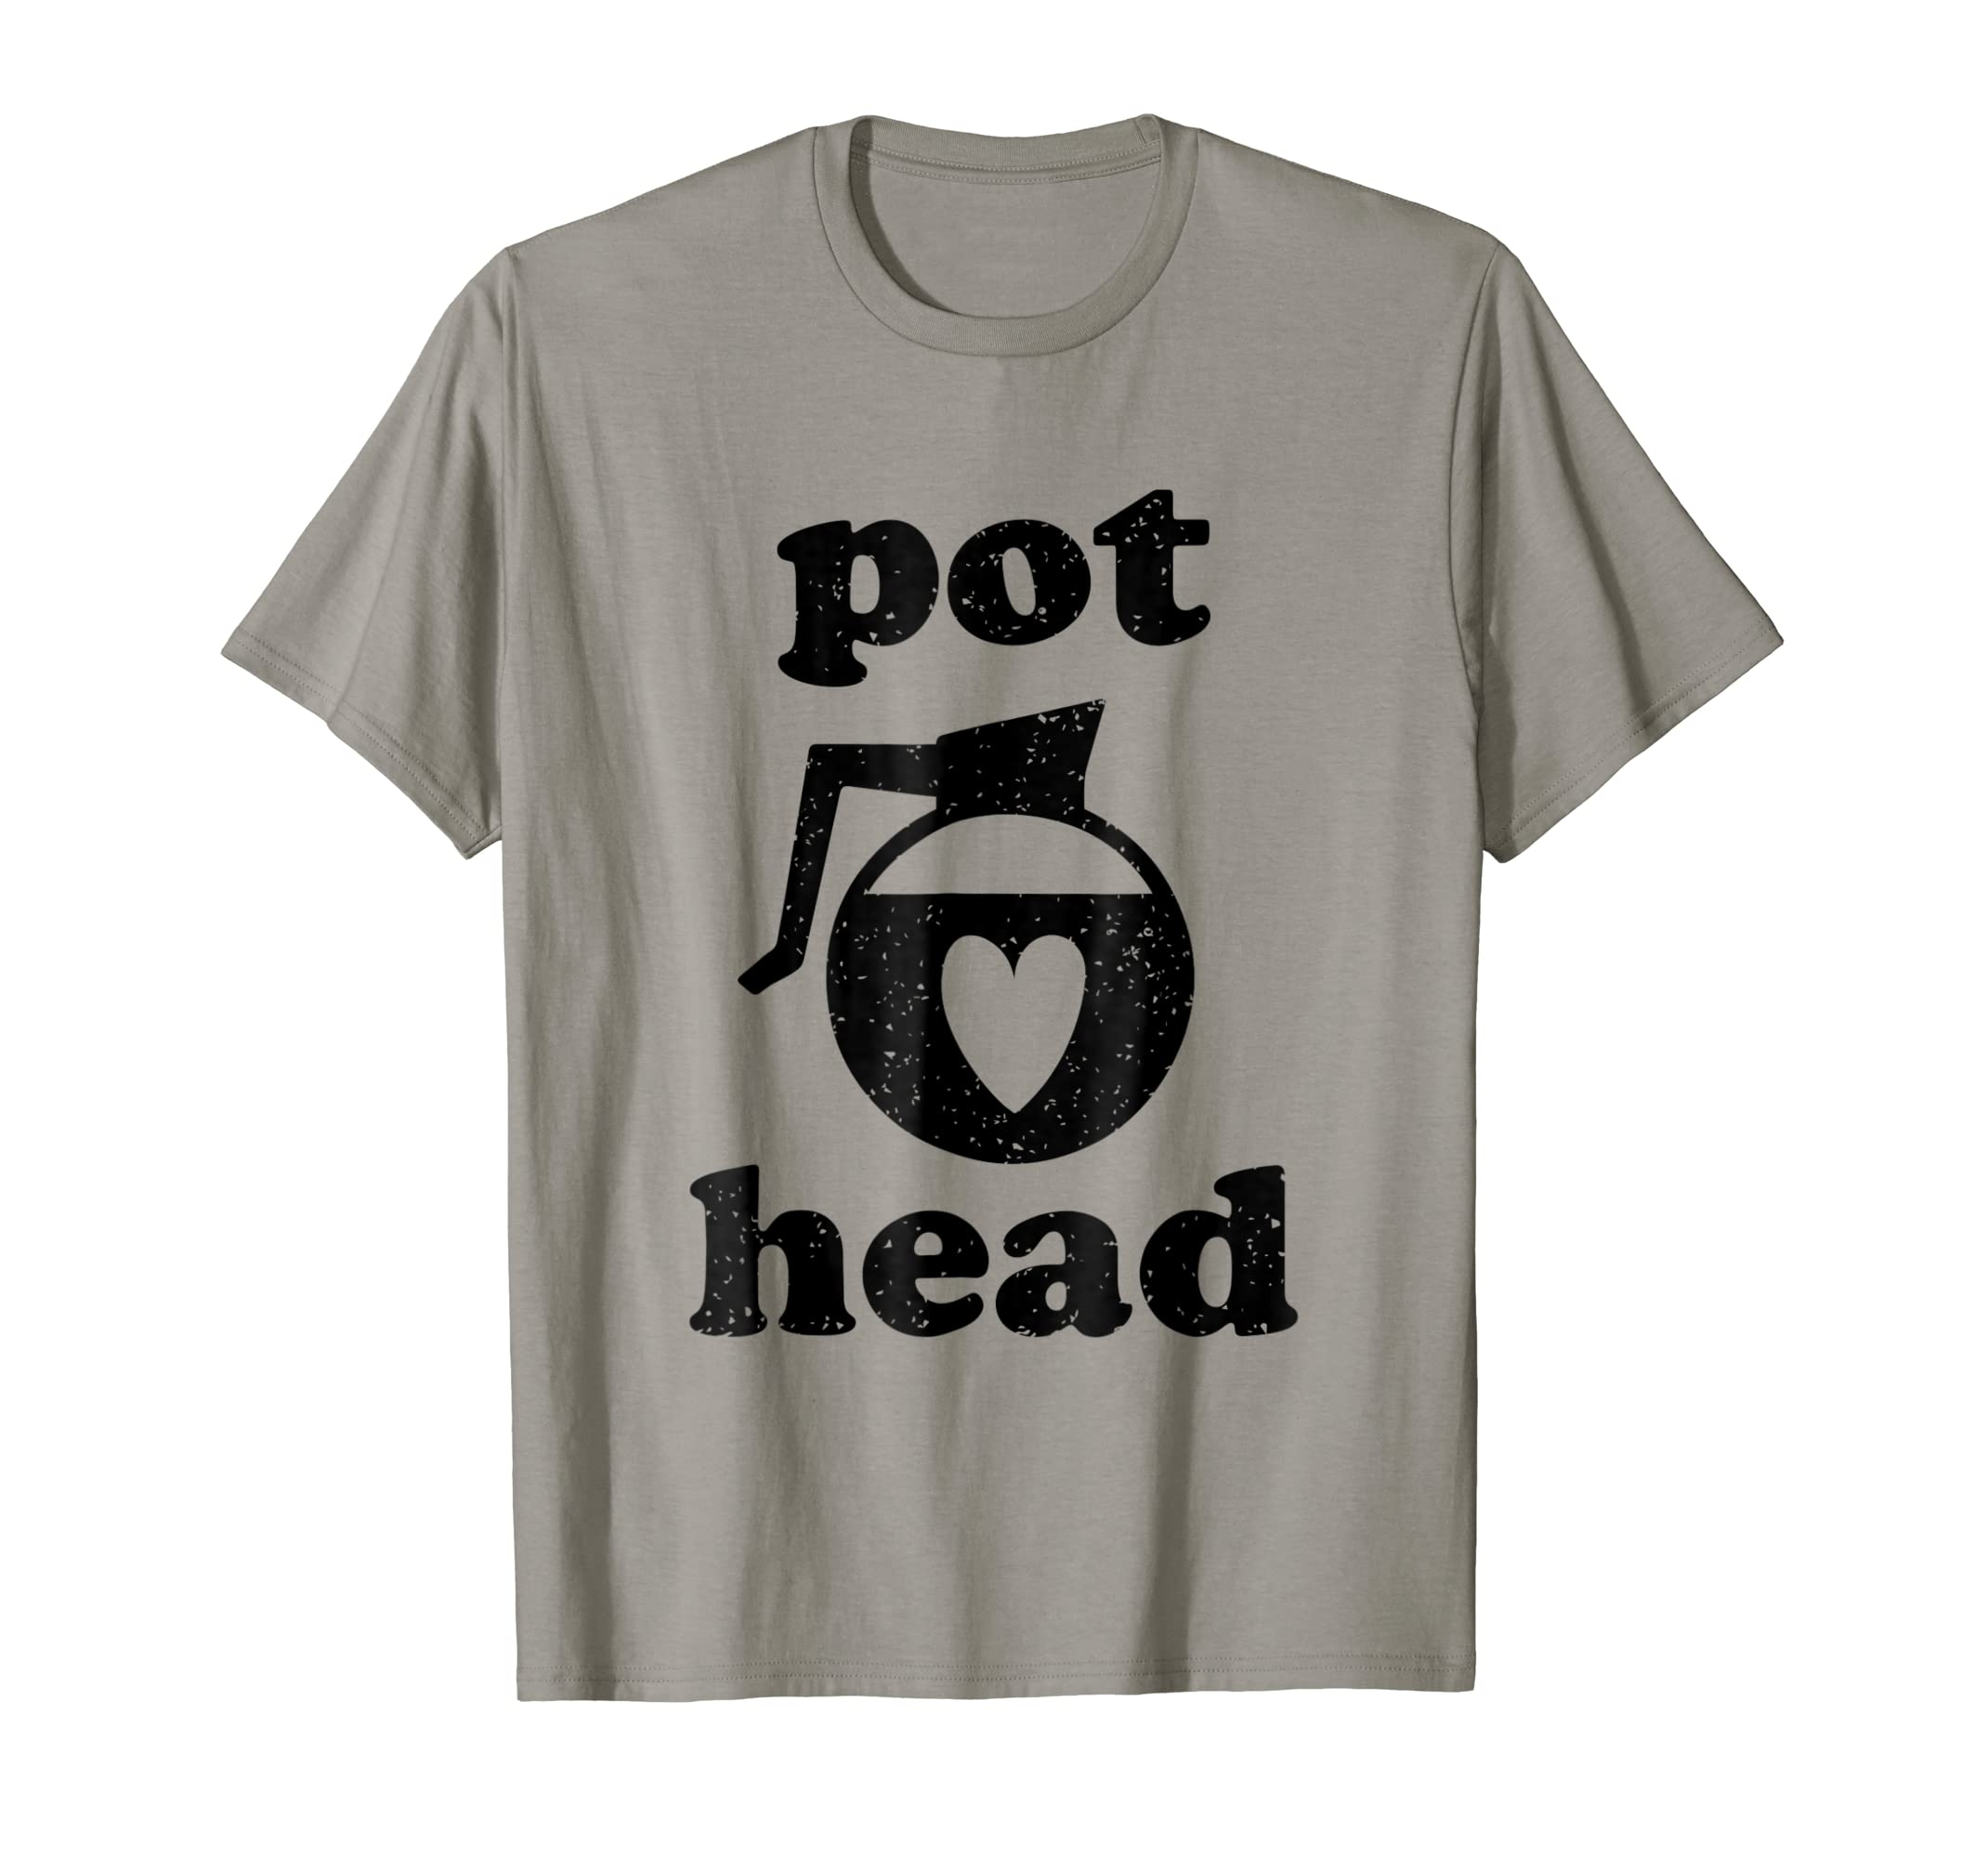 0af0bf2fc1a Amazon.com  Pot Head Coffee Shirt - Funny Coffee Lover T-Shirt  Clothing